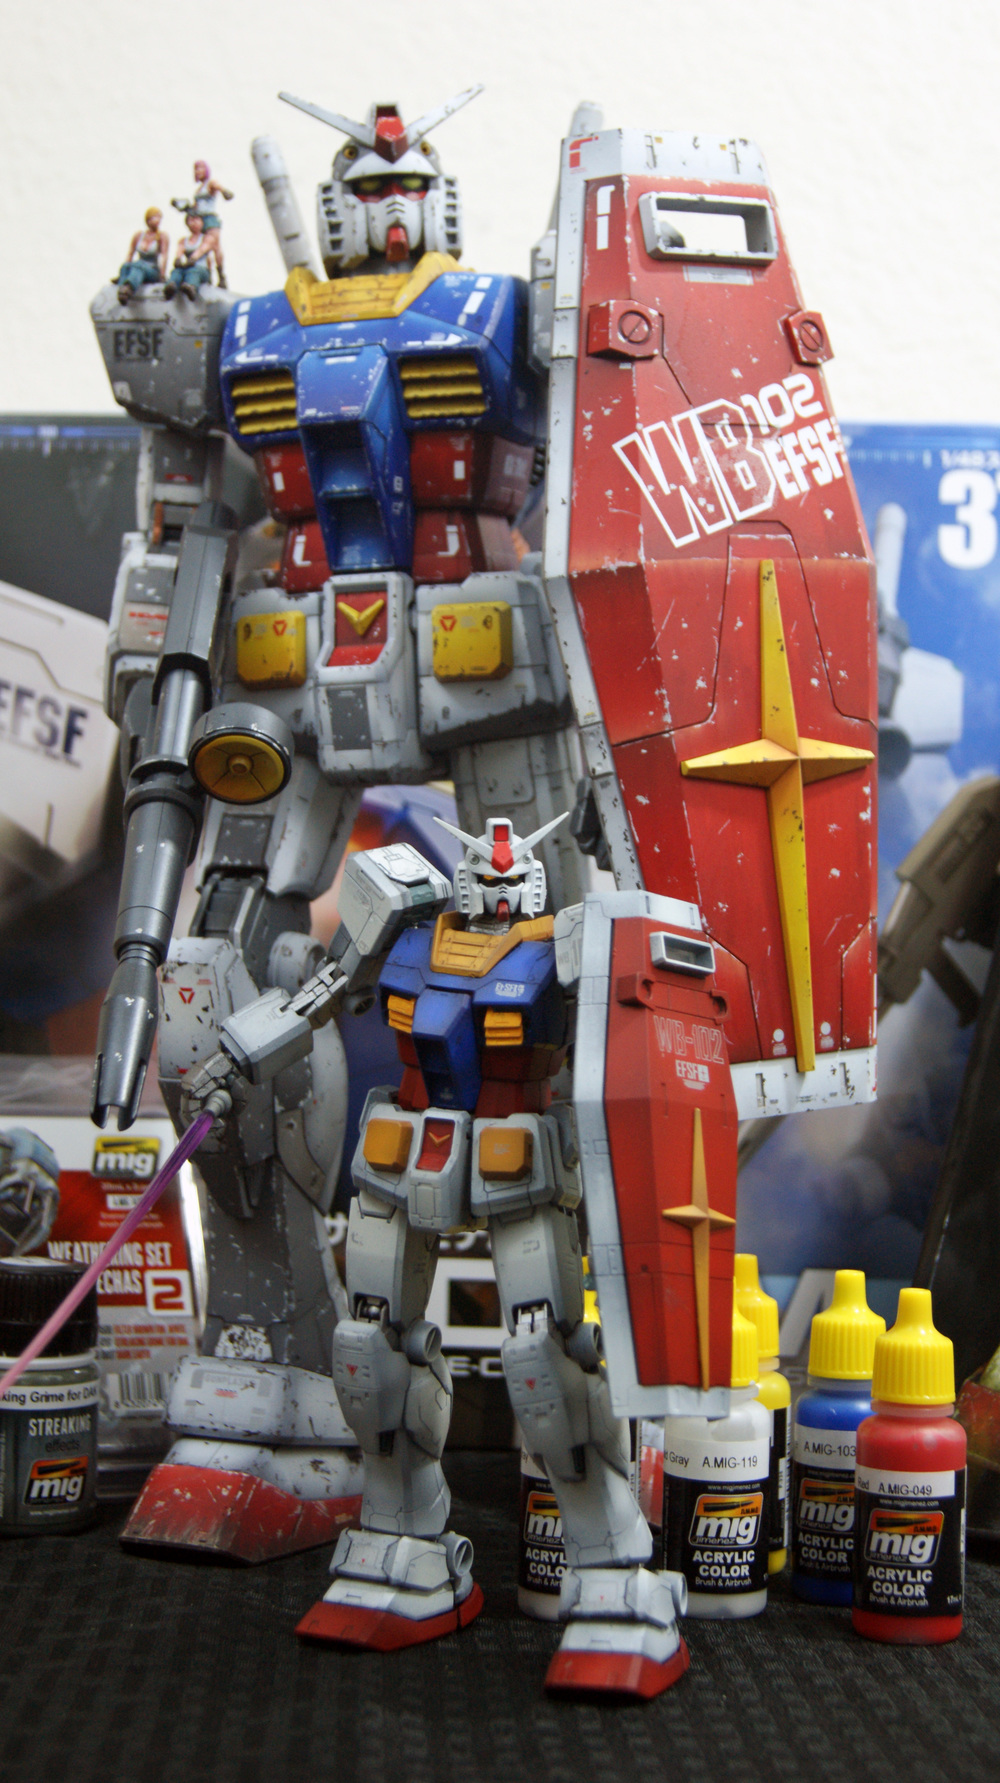 Gundam Scale Comparison RX-78-2 Mega Scale Heavy Grade HG